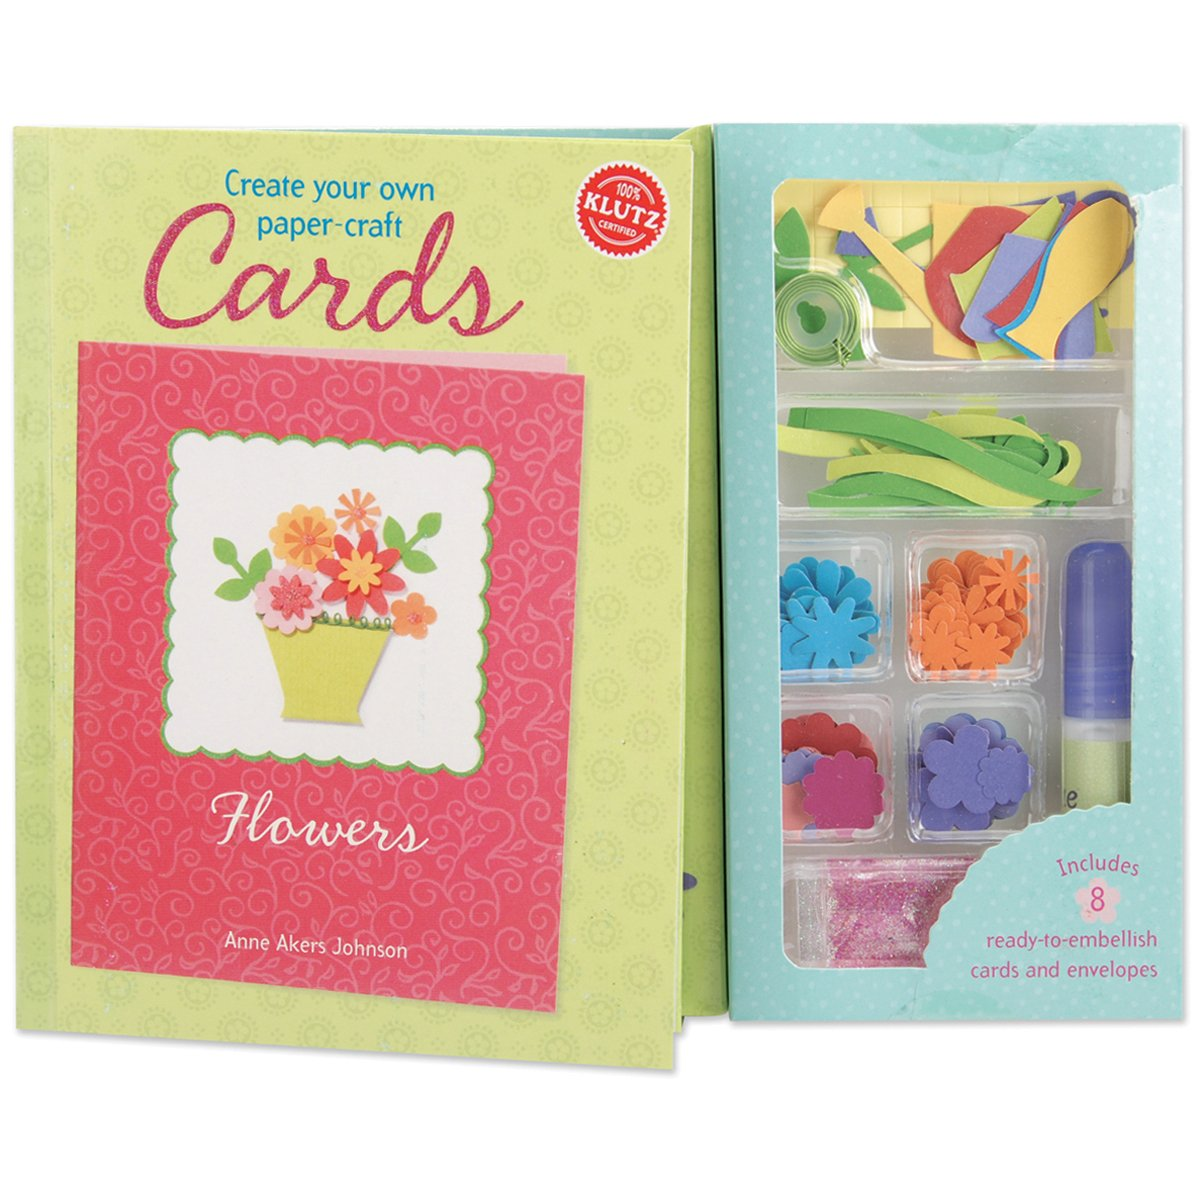 Klutz Create Your Own Paper Craft Cards Book Kit Flowers Anne Akers